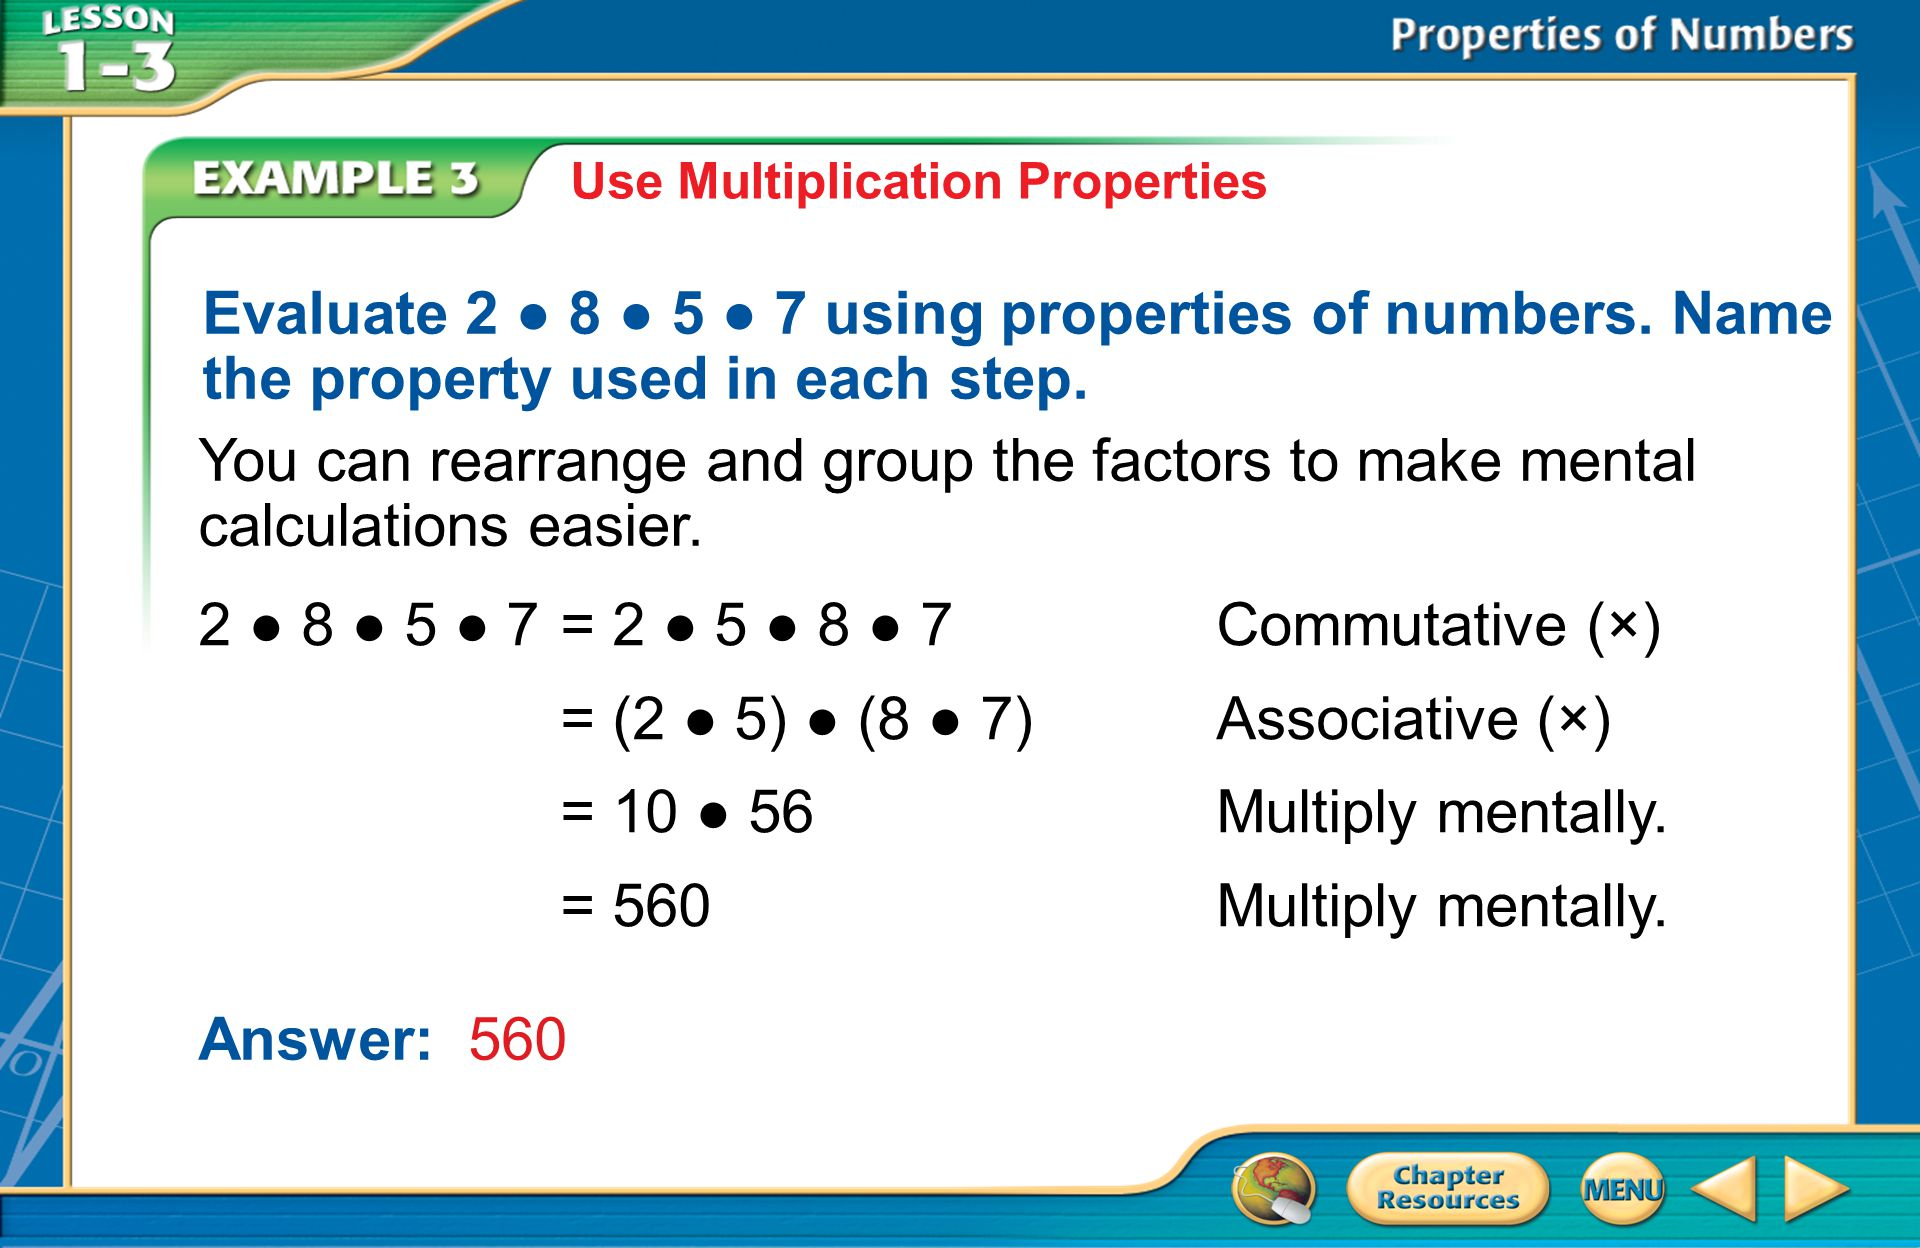 Example 3 Use Multiplication Properties Evaluate 2 ● 8 ● 5 ● 7 using properties of numbers.